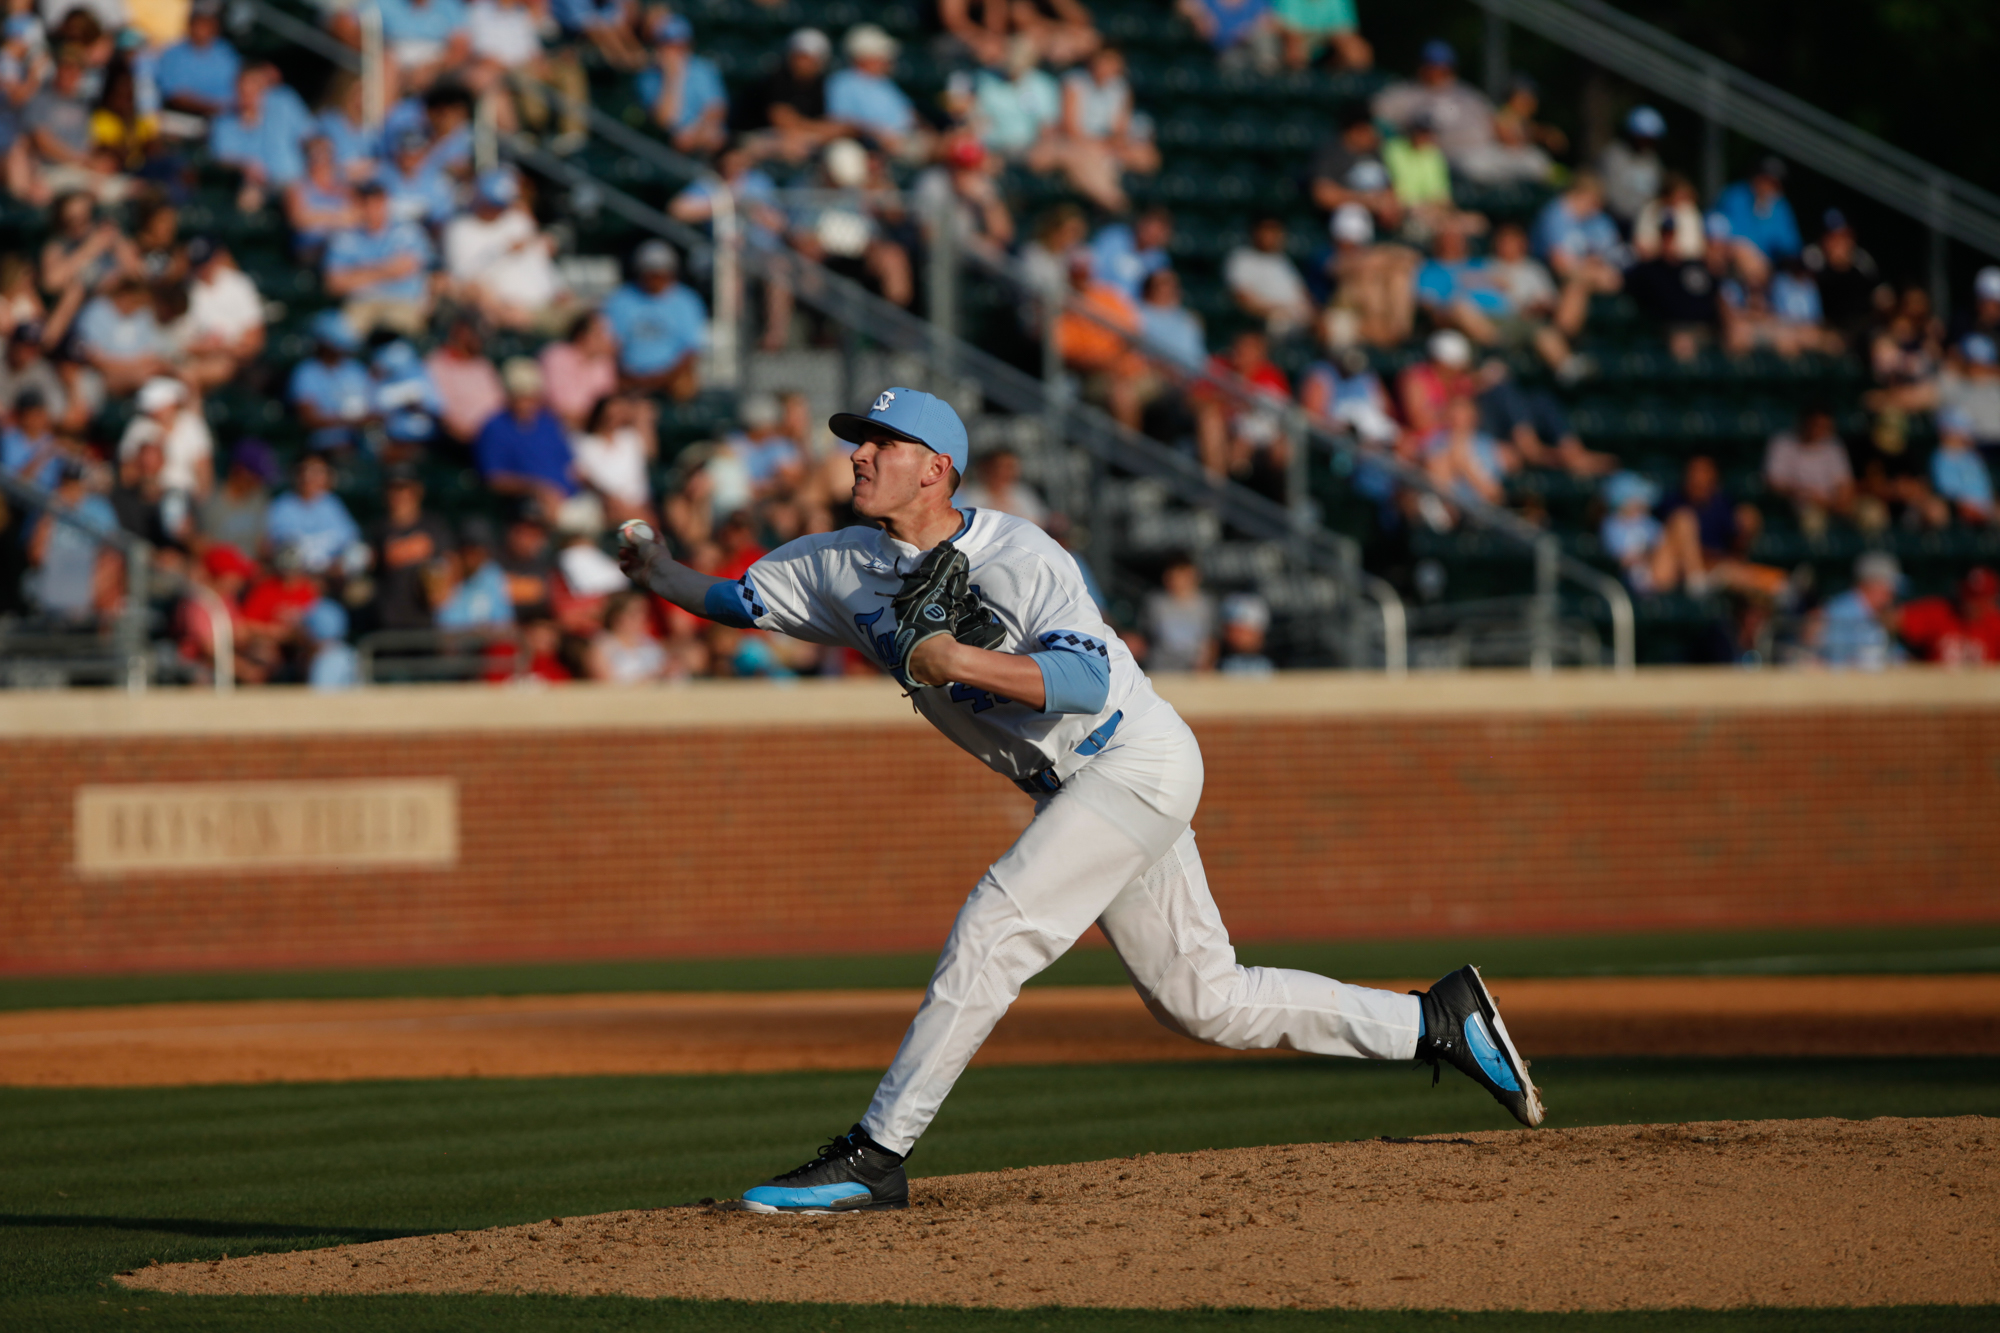 North Carolina's JB Bukauskas pitches against Davidson during the first round of the College World Series.